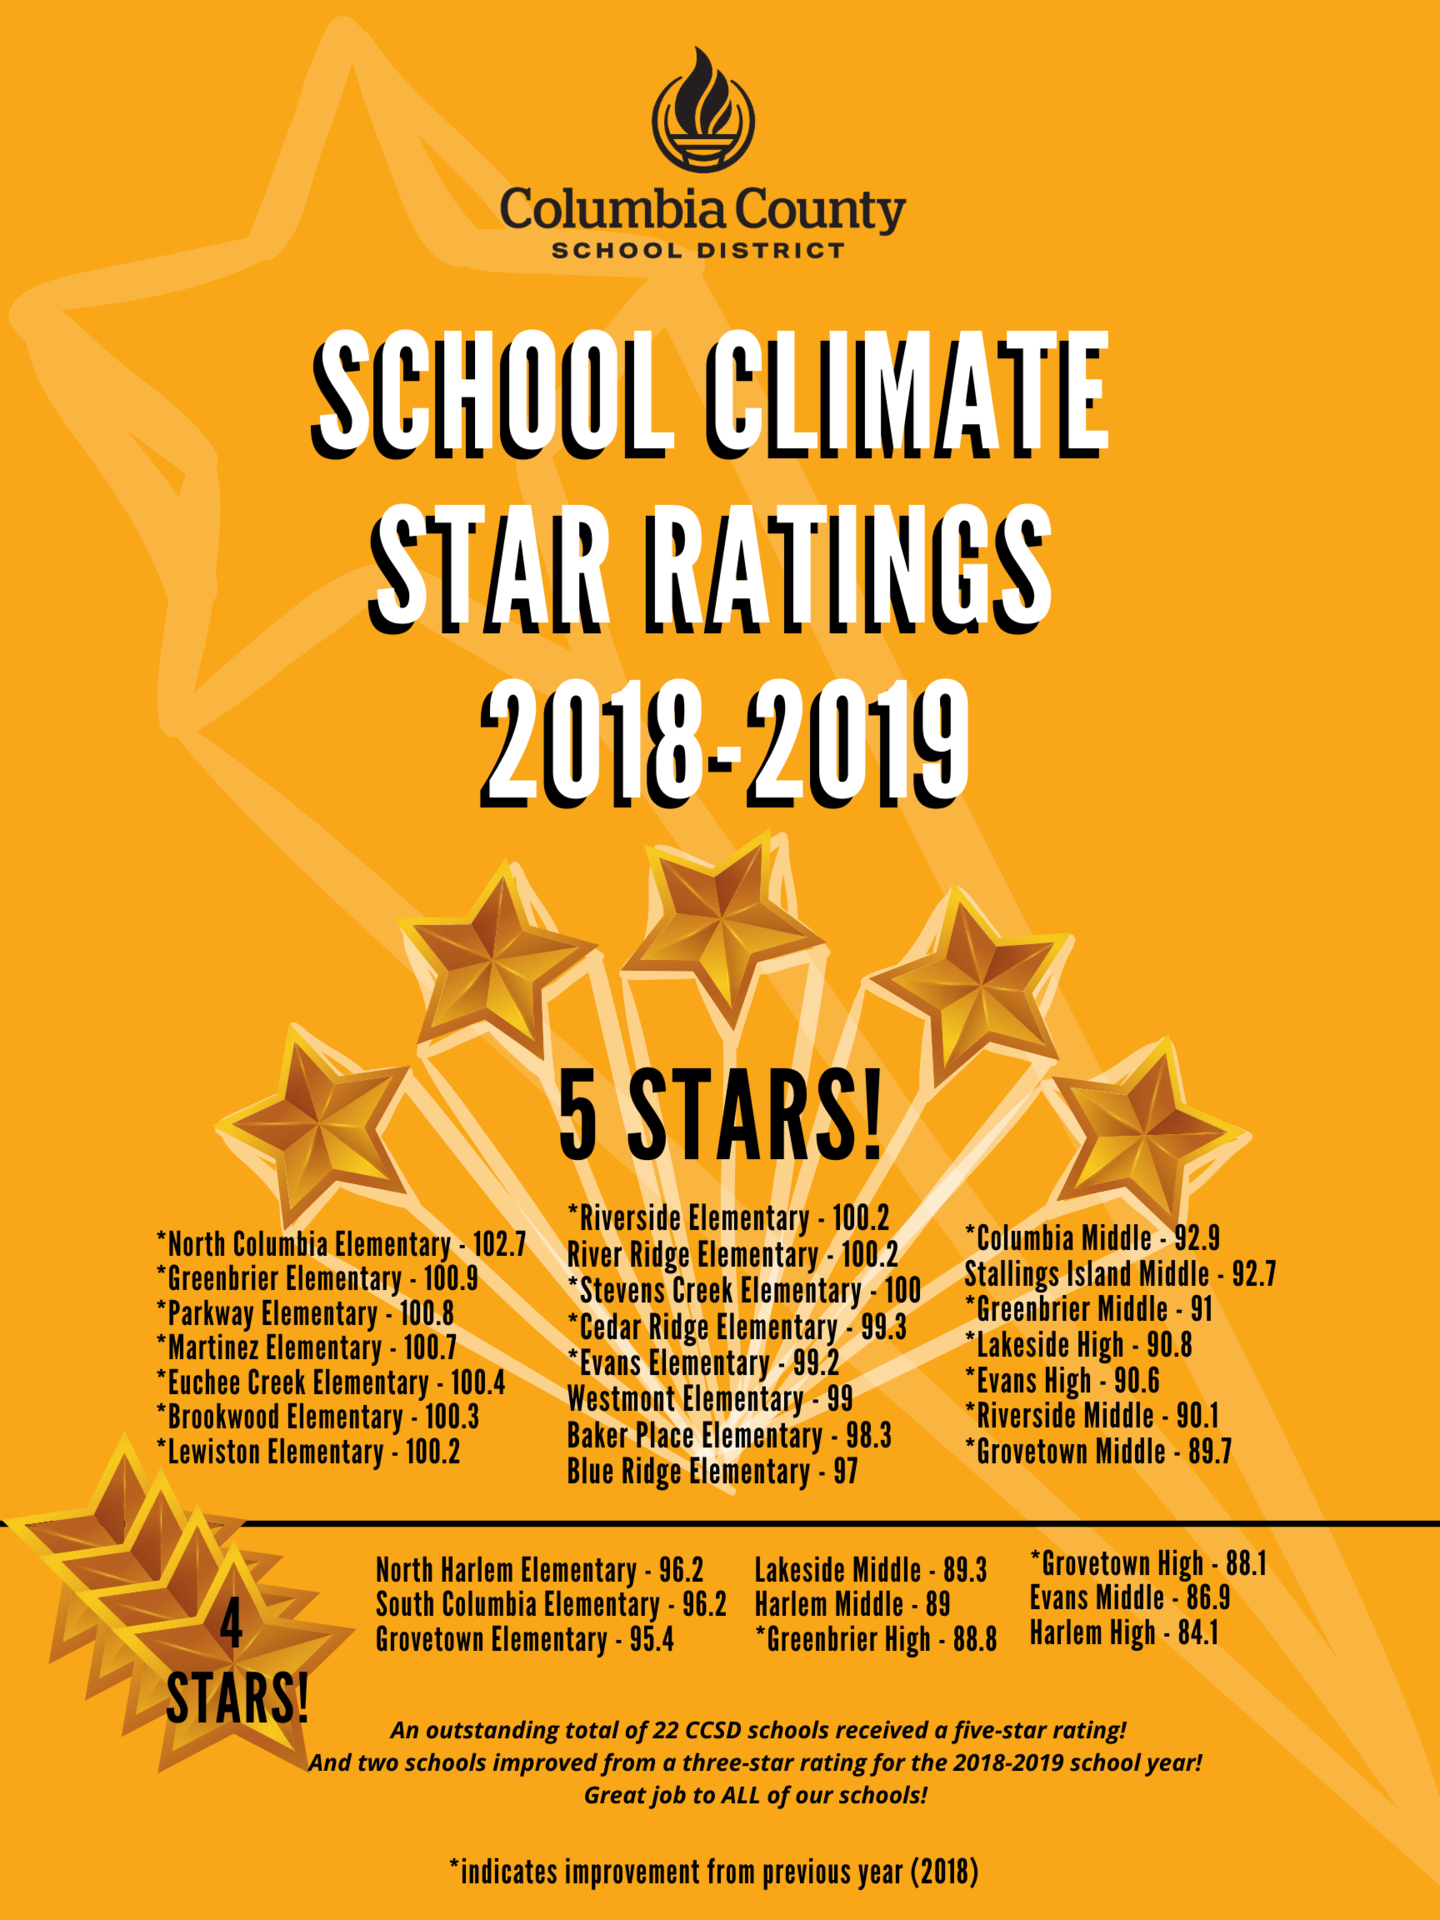 Climate star ratings visual